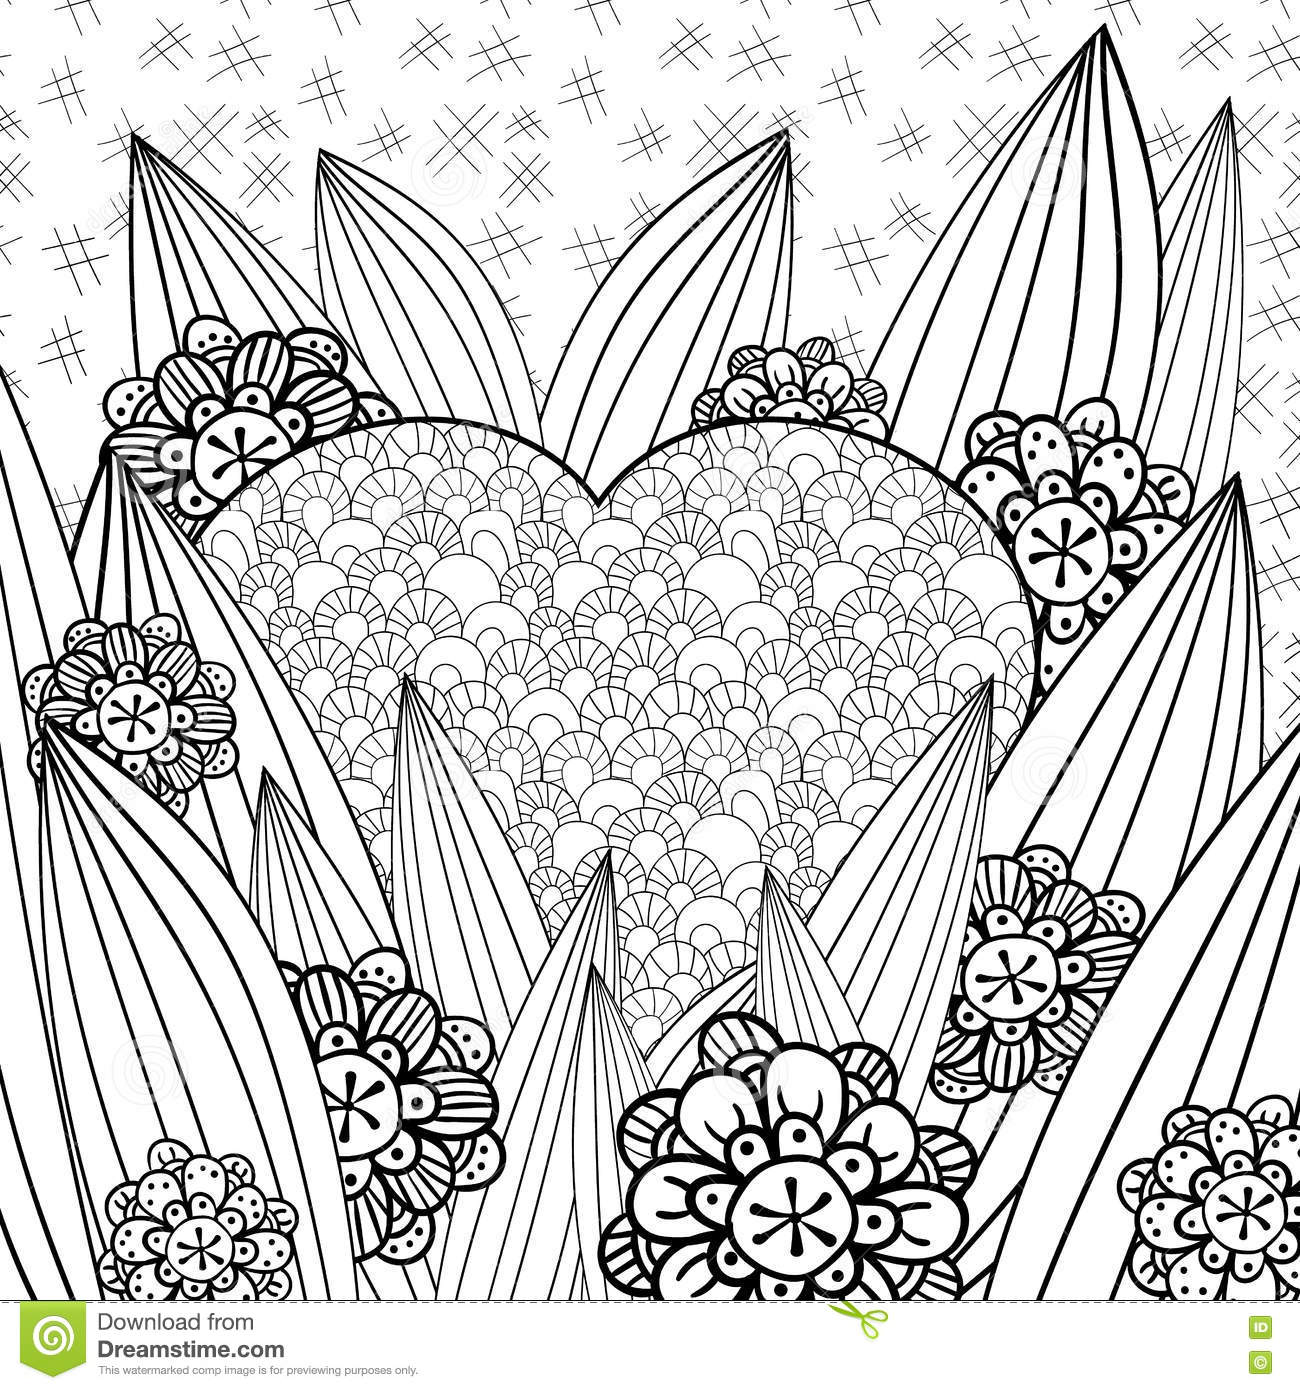 Whimsical Garden Adult Coloring Page Stock Vector Illustration Of